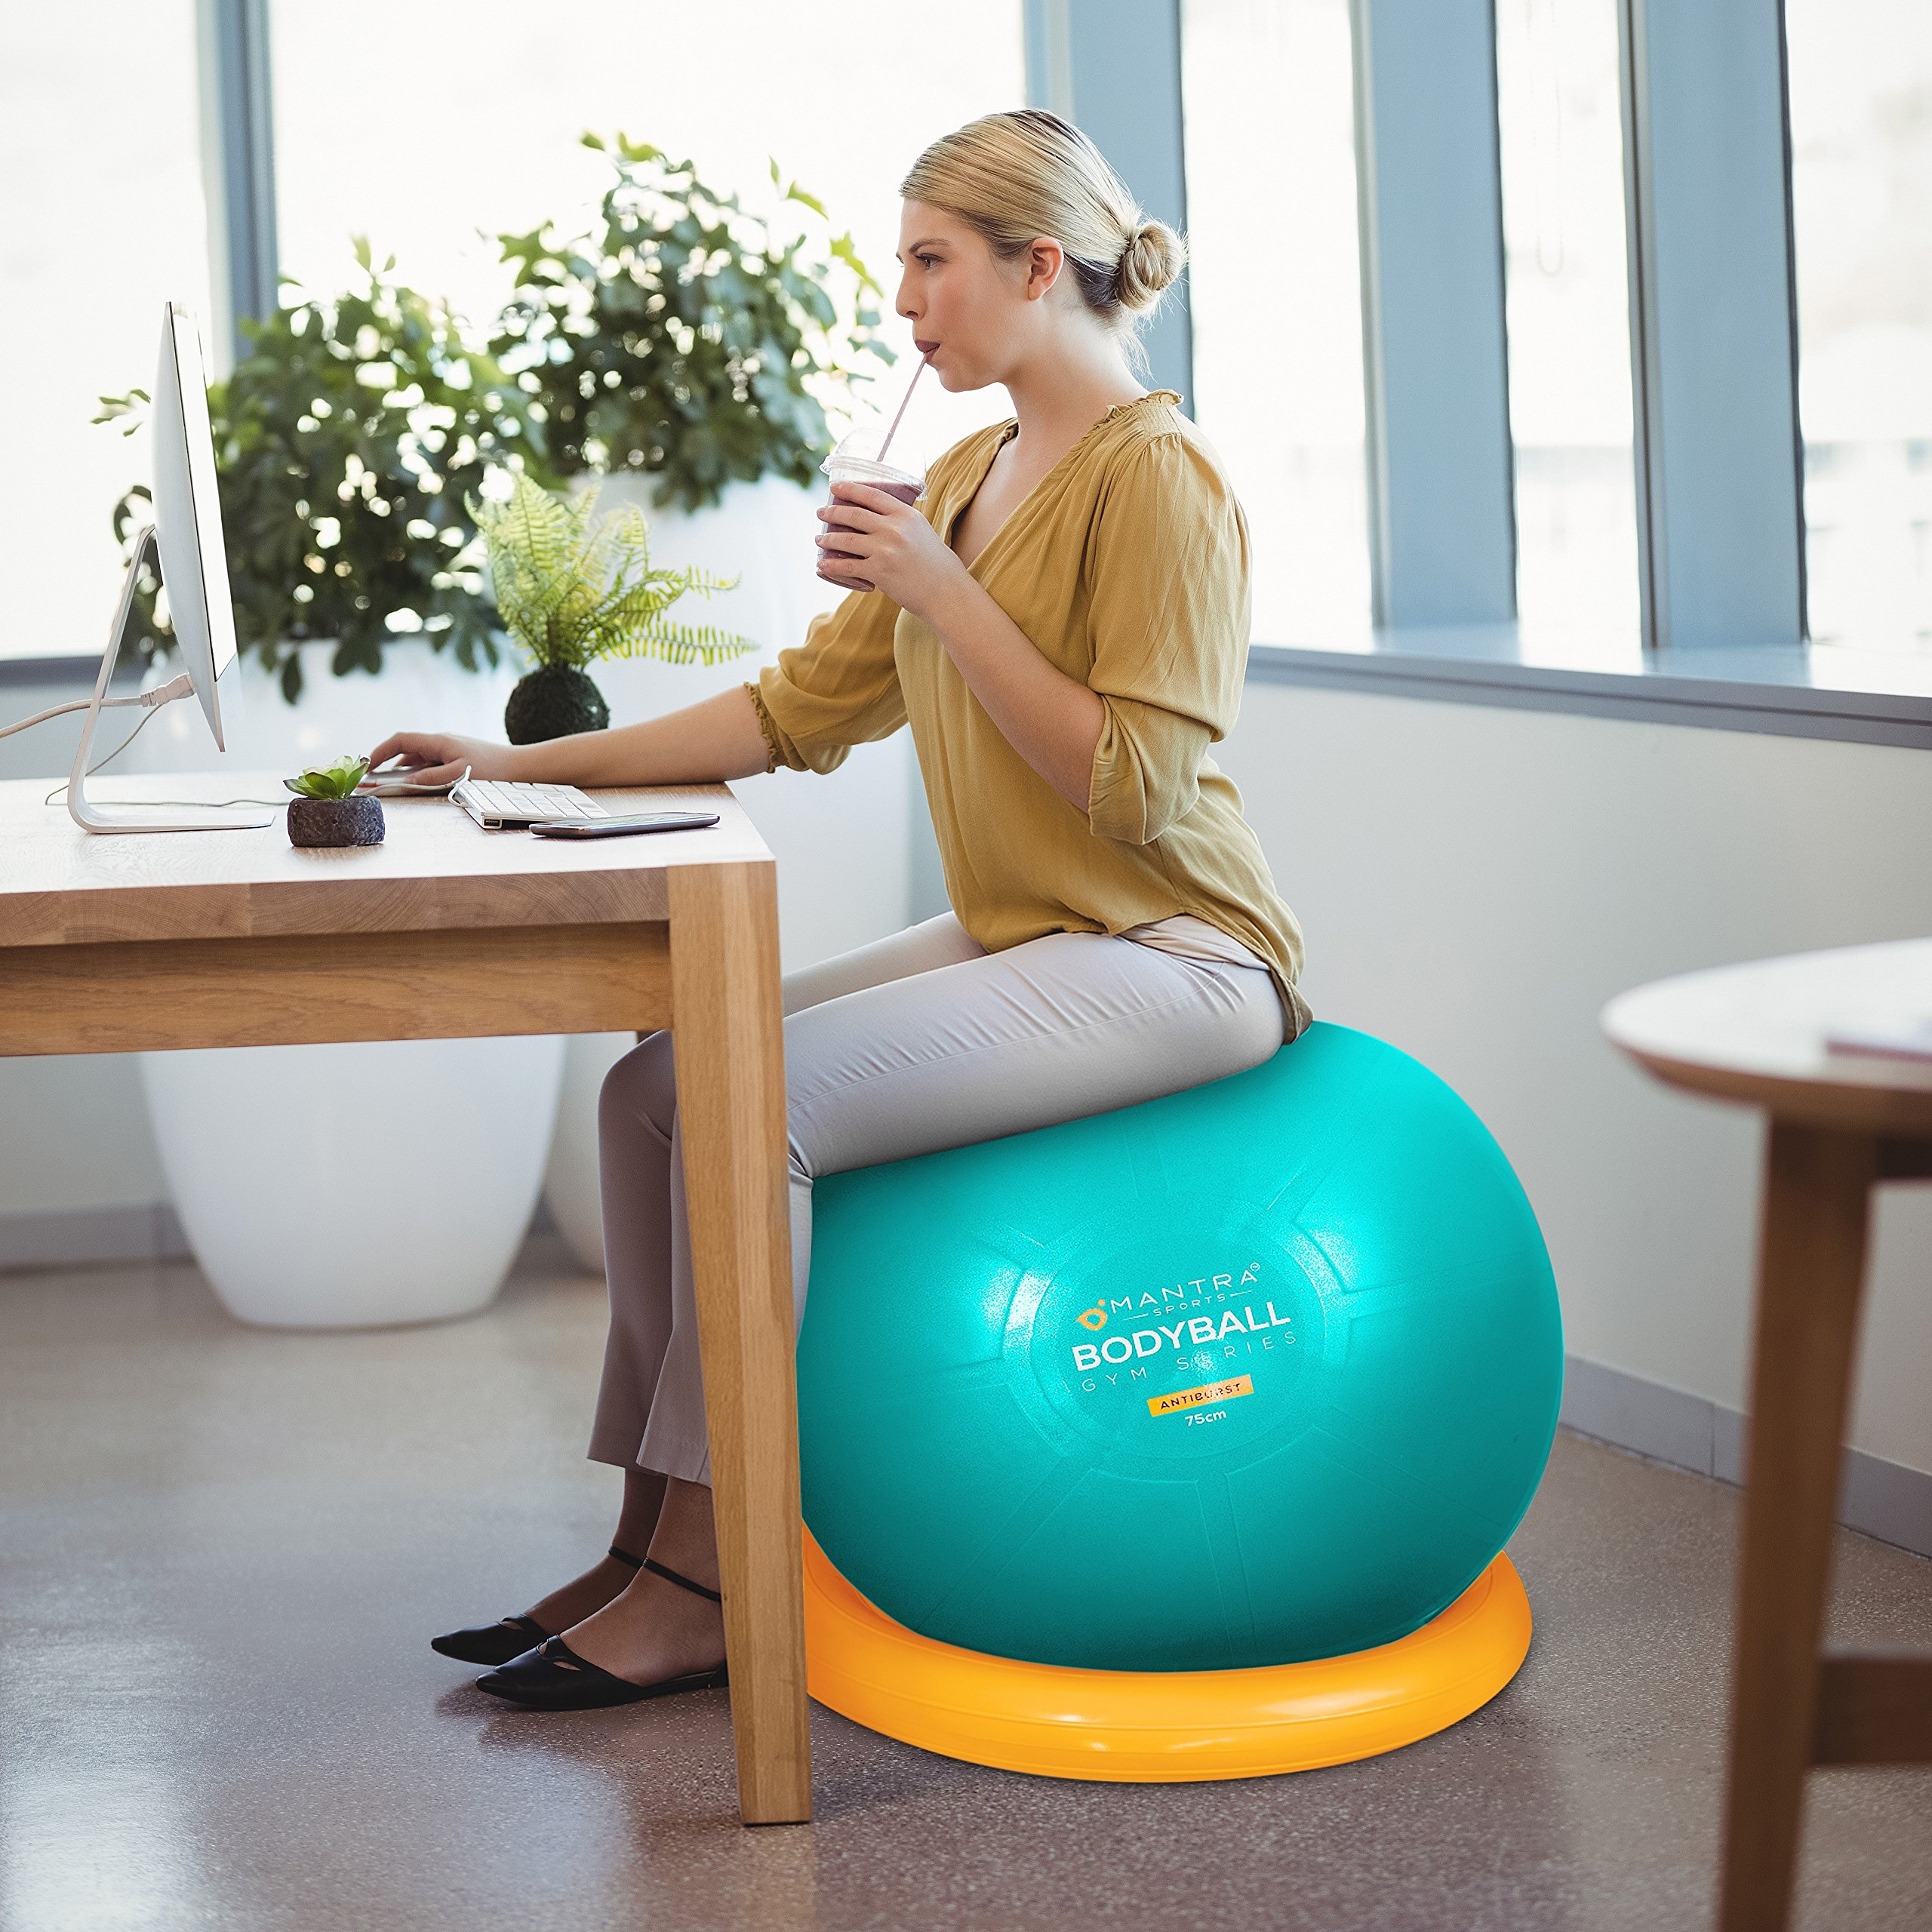 Awe Inspiring Details About Exercise Ball Chair 65Cm 75Cm Yoga Fitness Pilates Ball Stability Base For Home Interior And Landscaping Ponolsignezvosmurscom